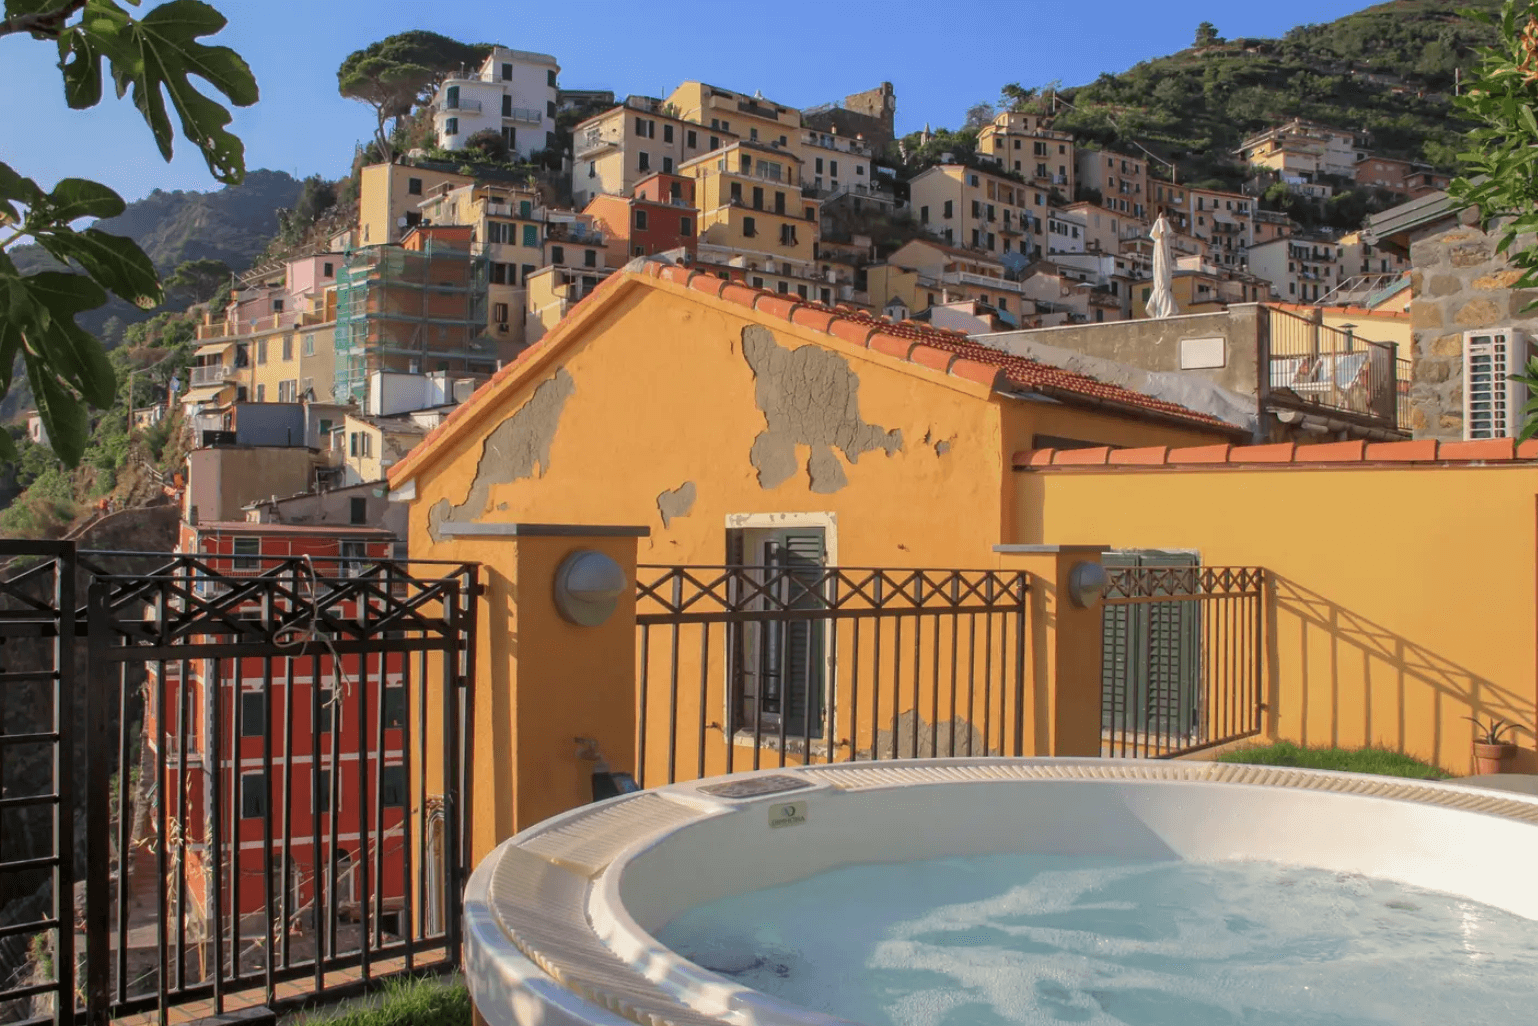 an image of a hot tub on an airbnb balcony overlooking Cinque Terre, Italy